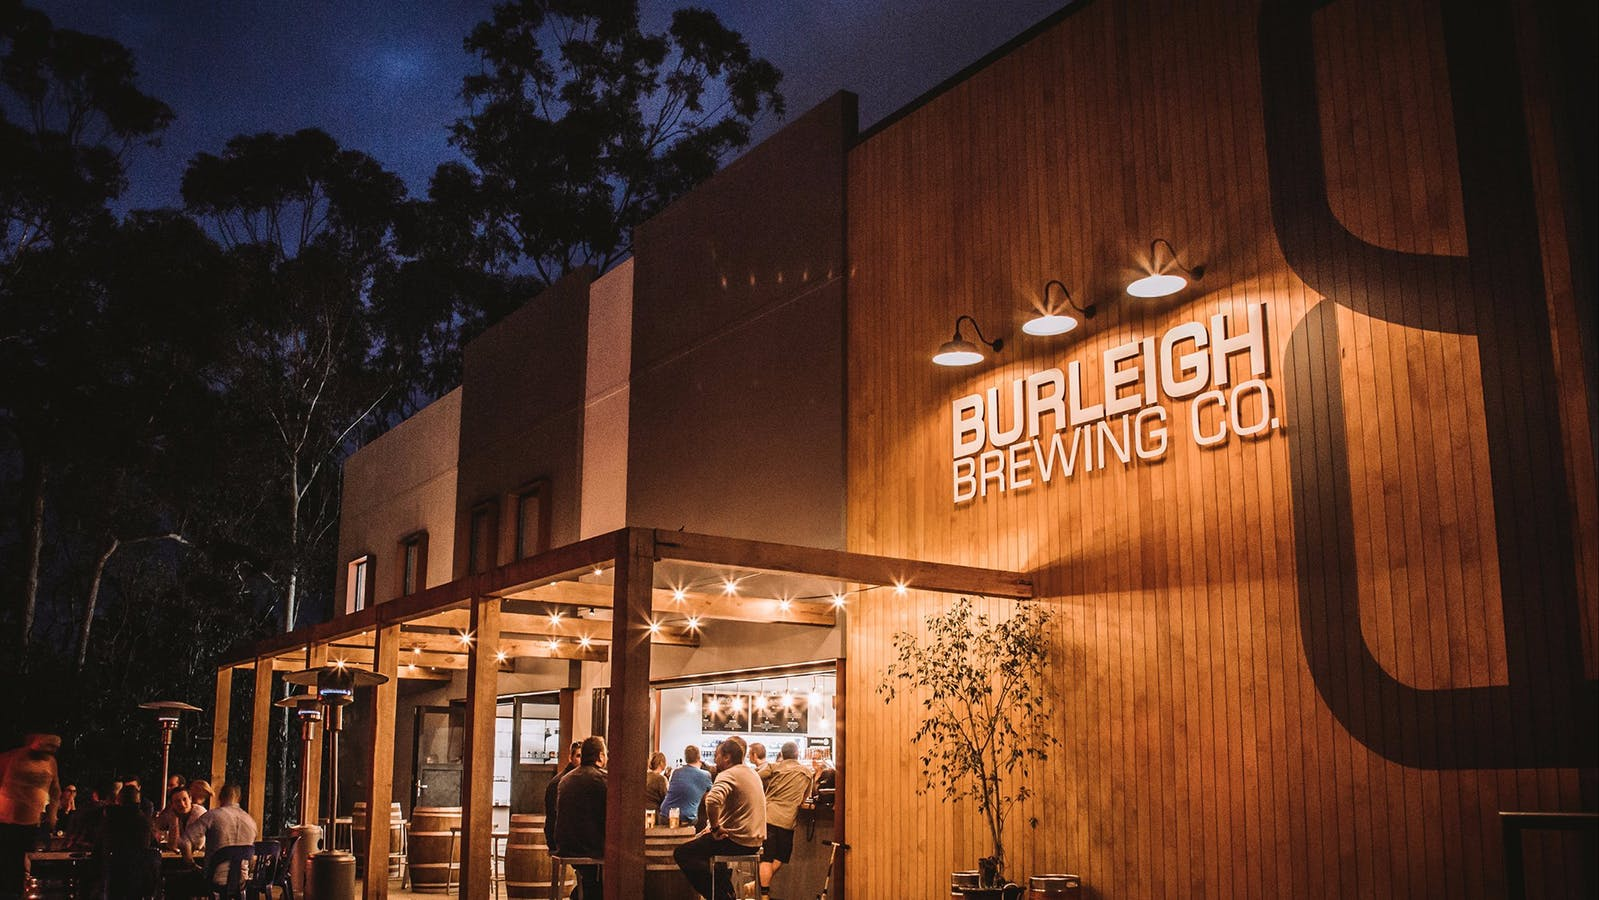 The Taphouse and Brewery is proudly located in Burleigh Heads. The perfect spot to taste the beers.